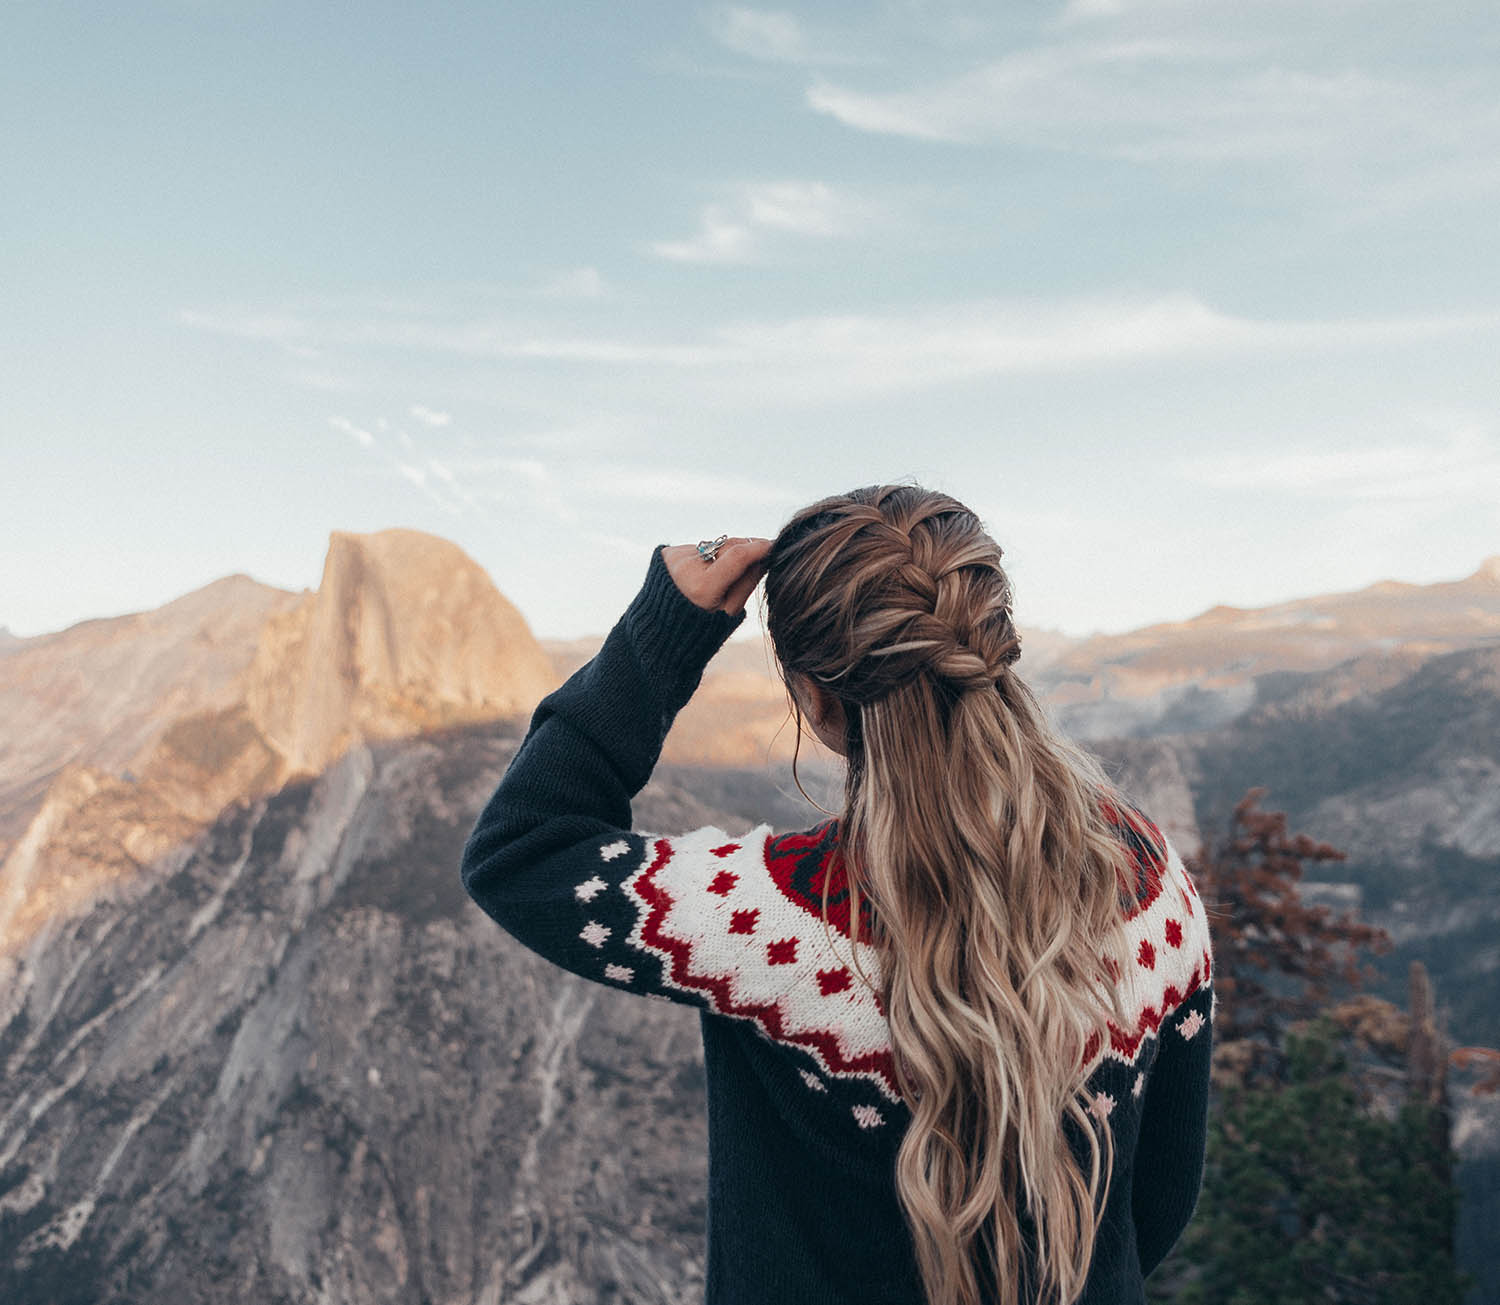 Rapunzel of Sweden Extensions - French Braid & Mountains - Yosemite National Park